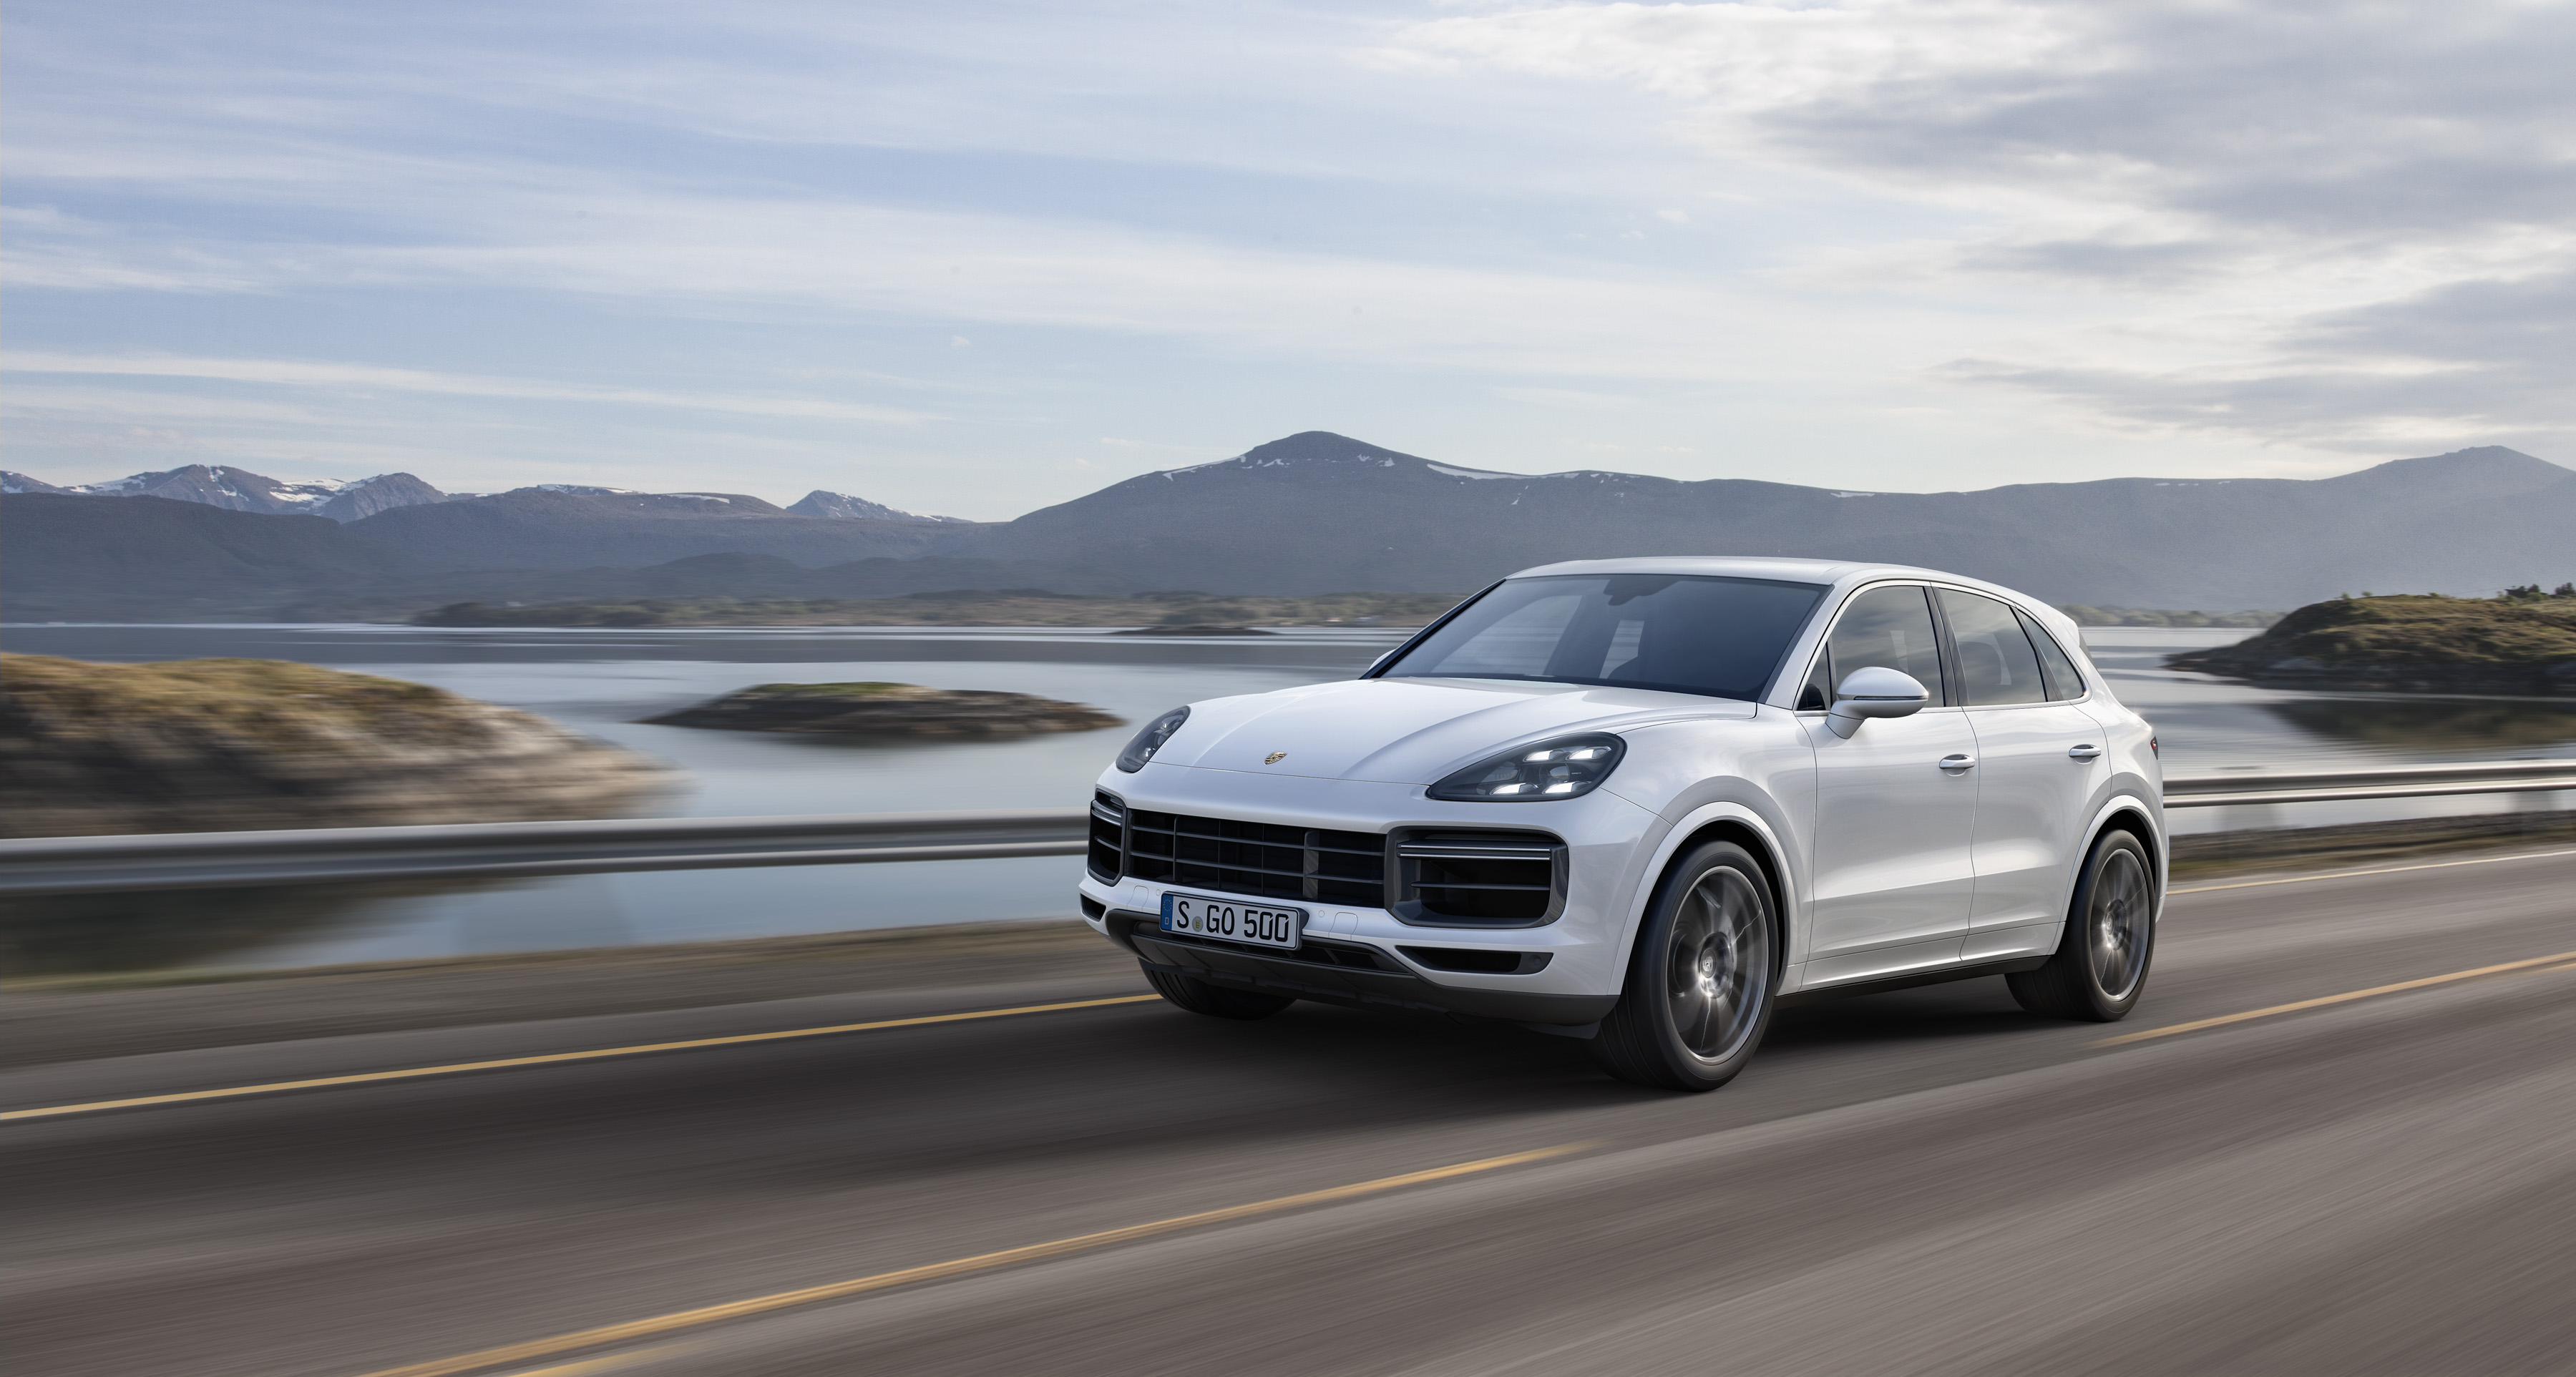 First Drive Review The 2019 Porsche Cayenne Turbo Sets All The Thirst Traps